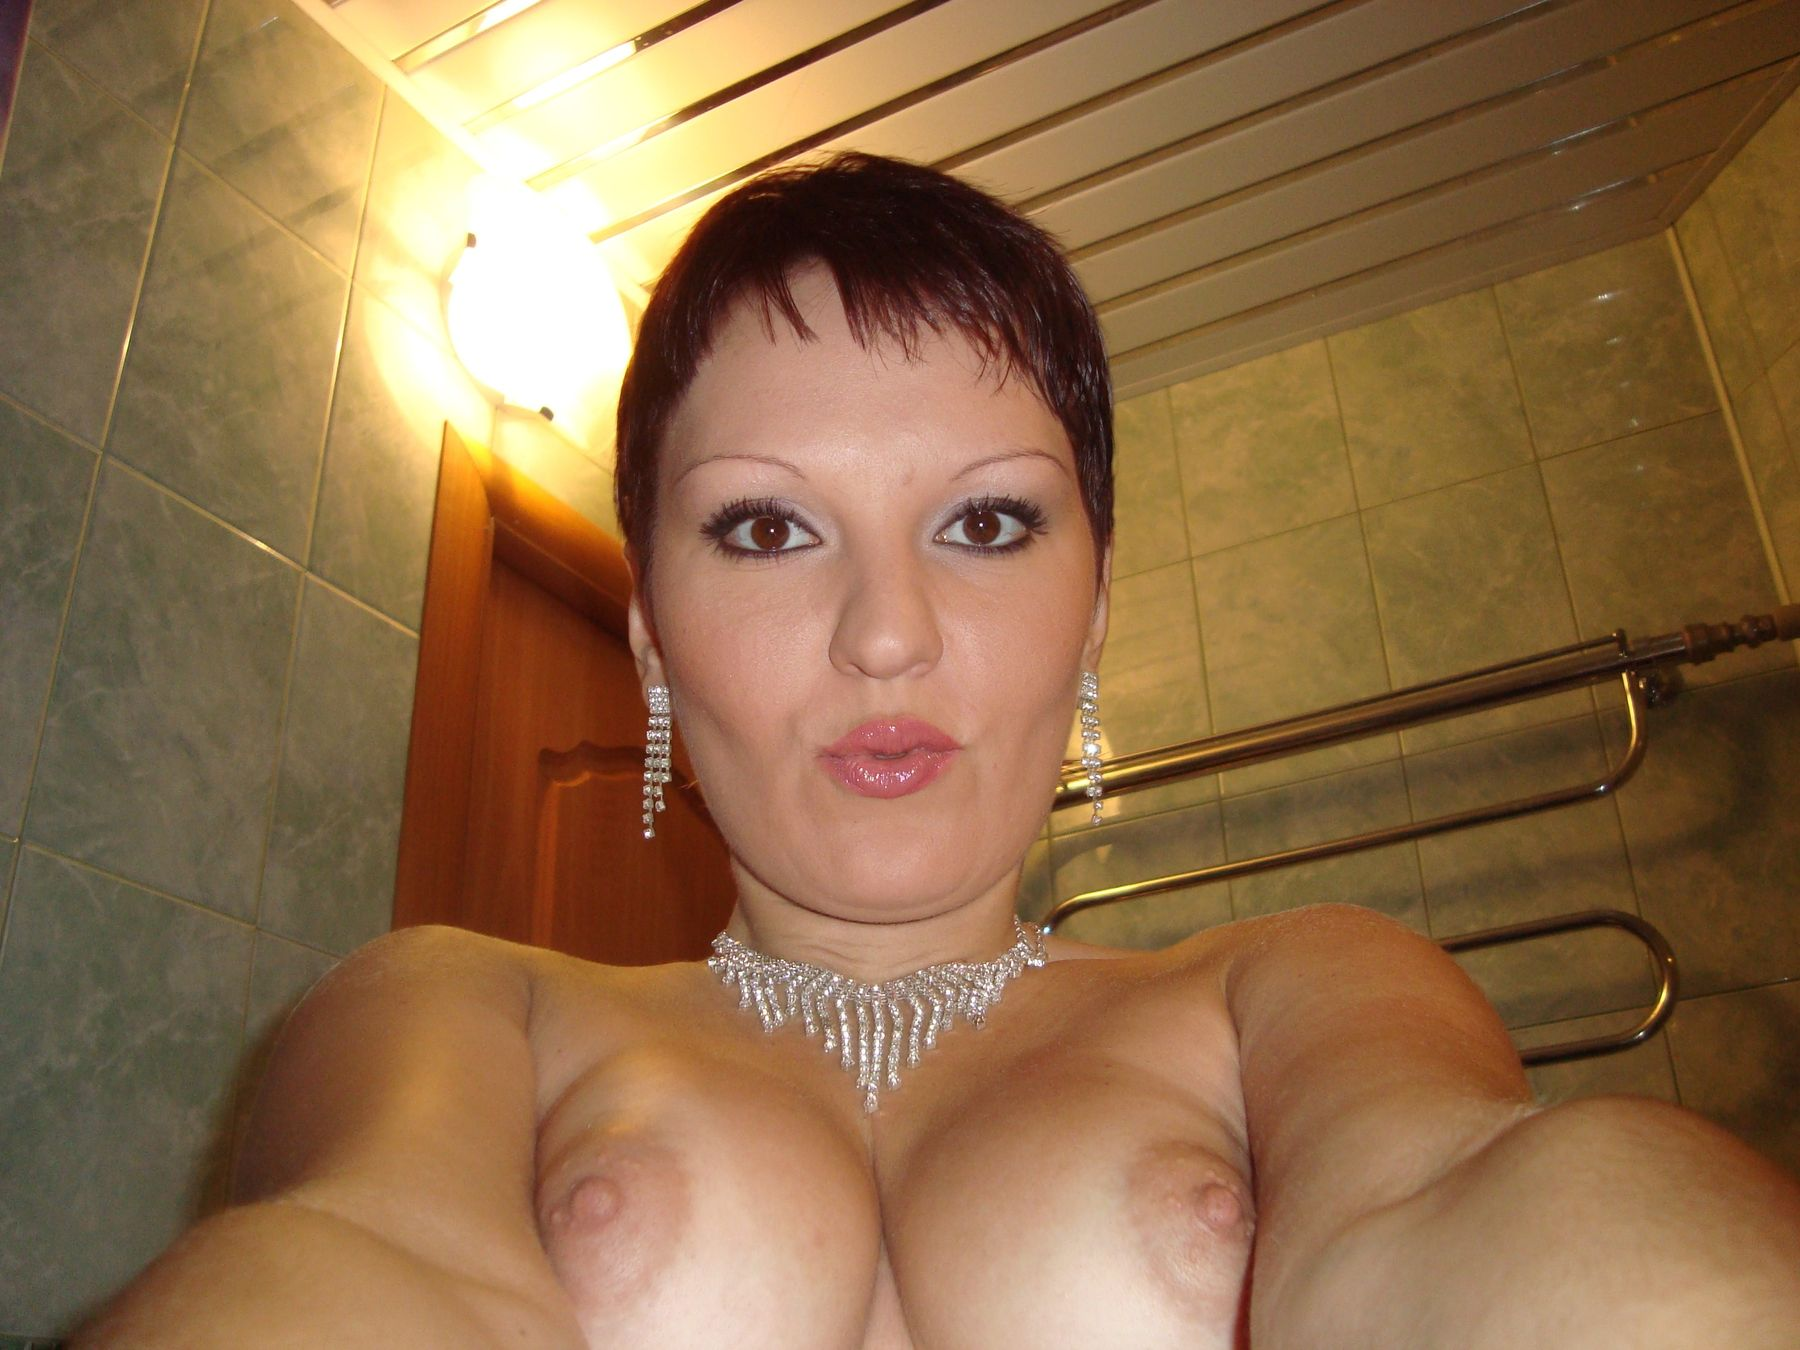 Hot amateur mature removes her bra for nude self shot. MILF whips out her big natural tits for selfie picture